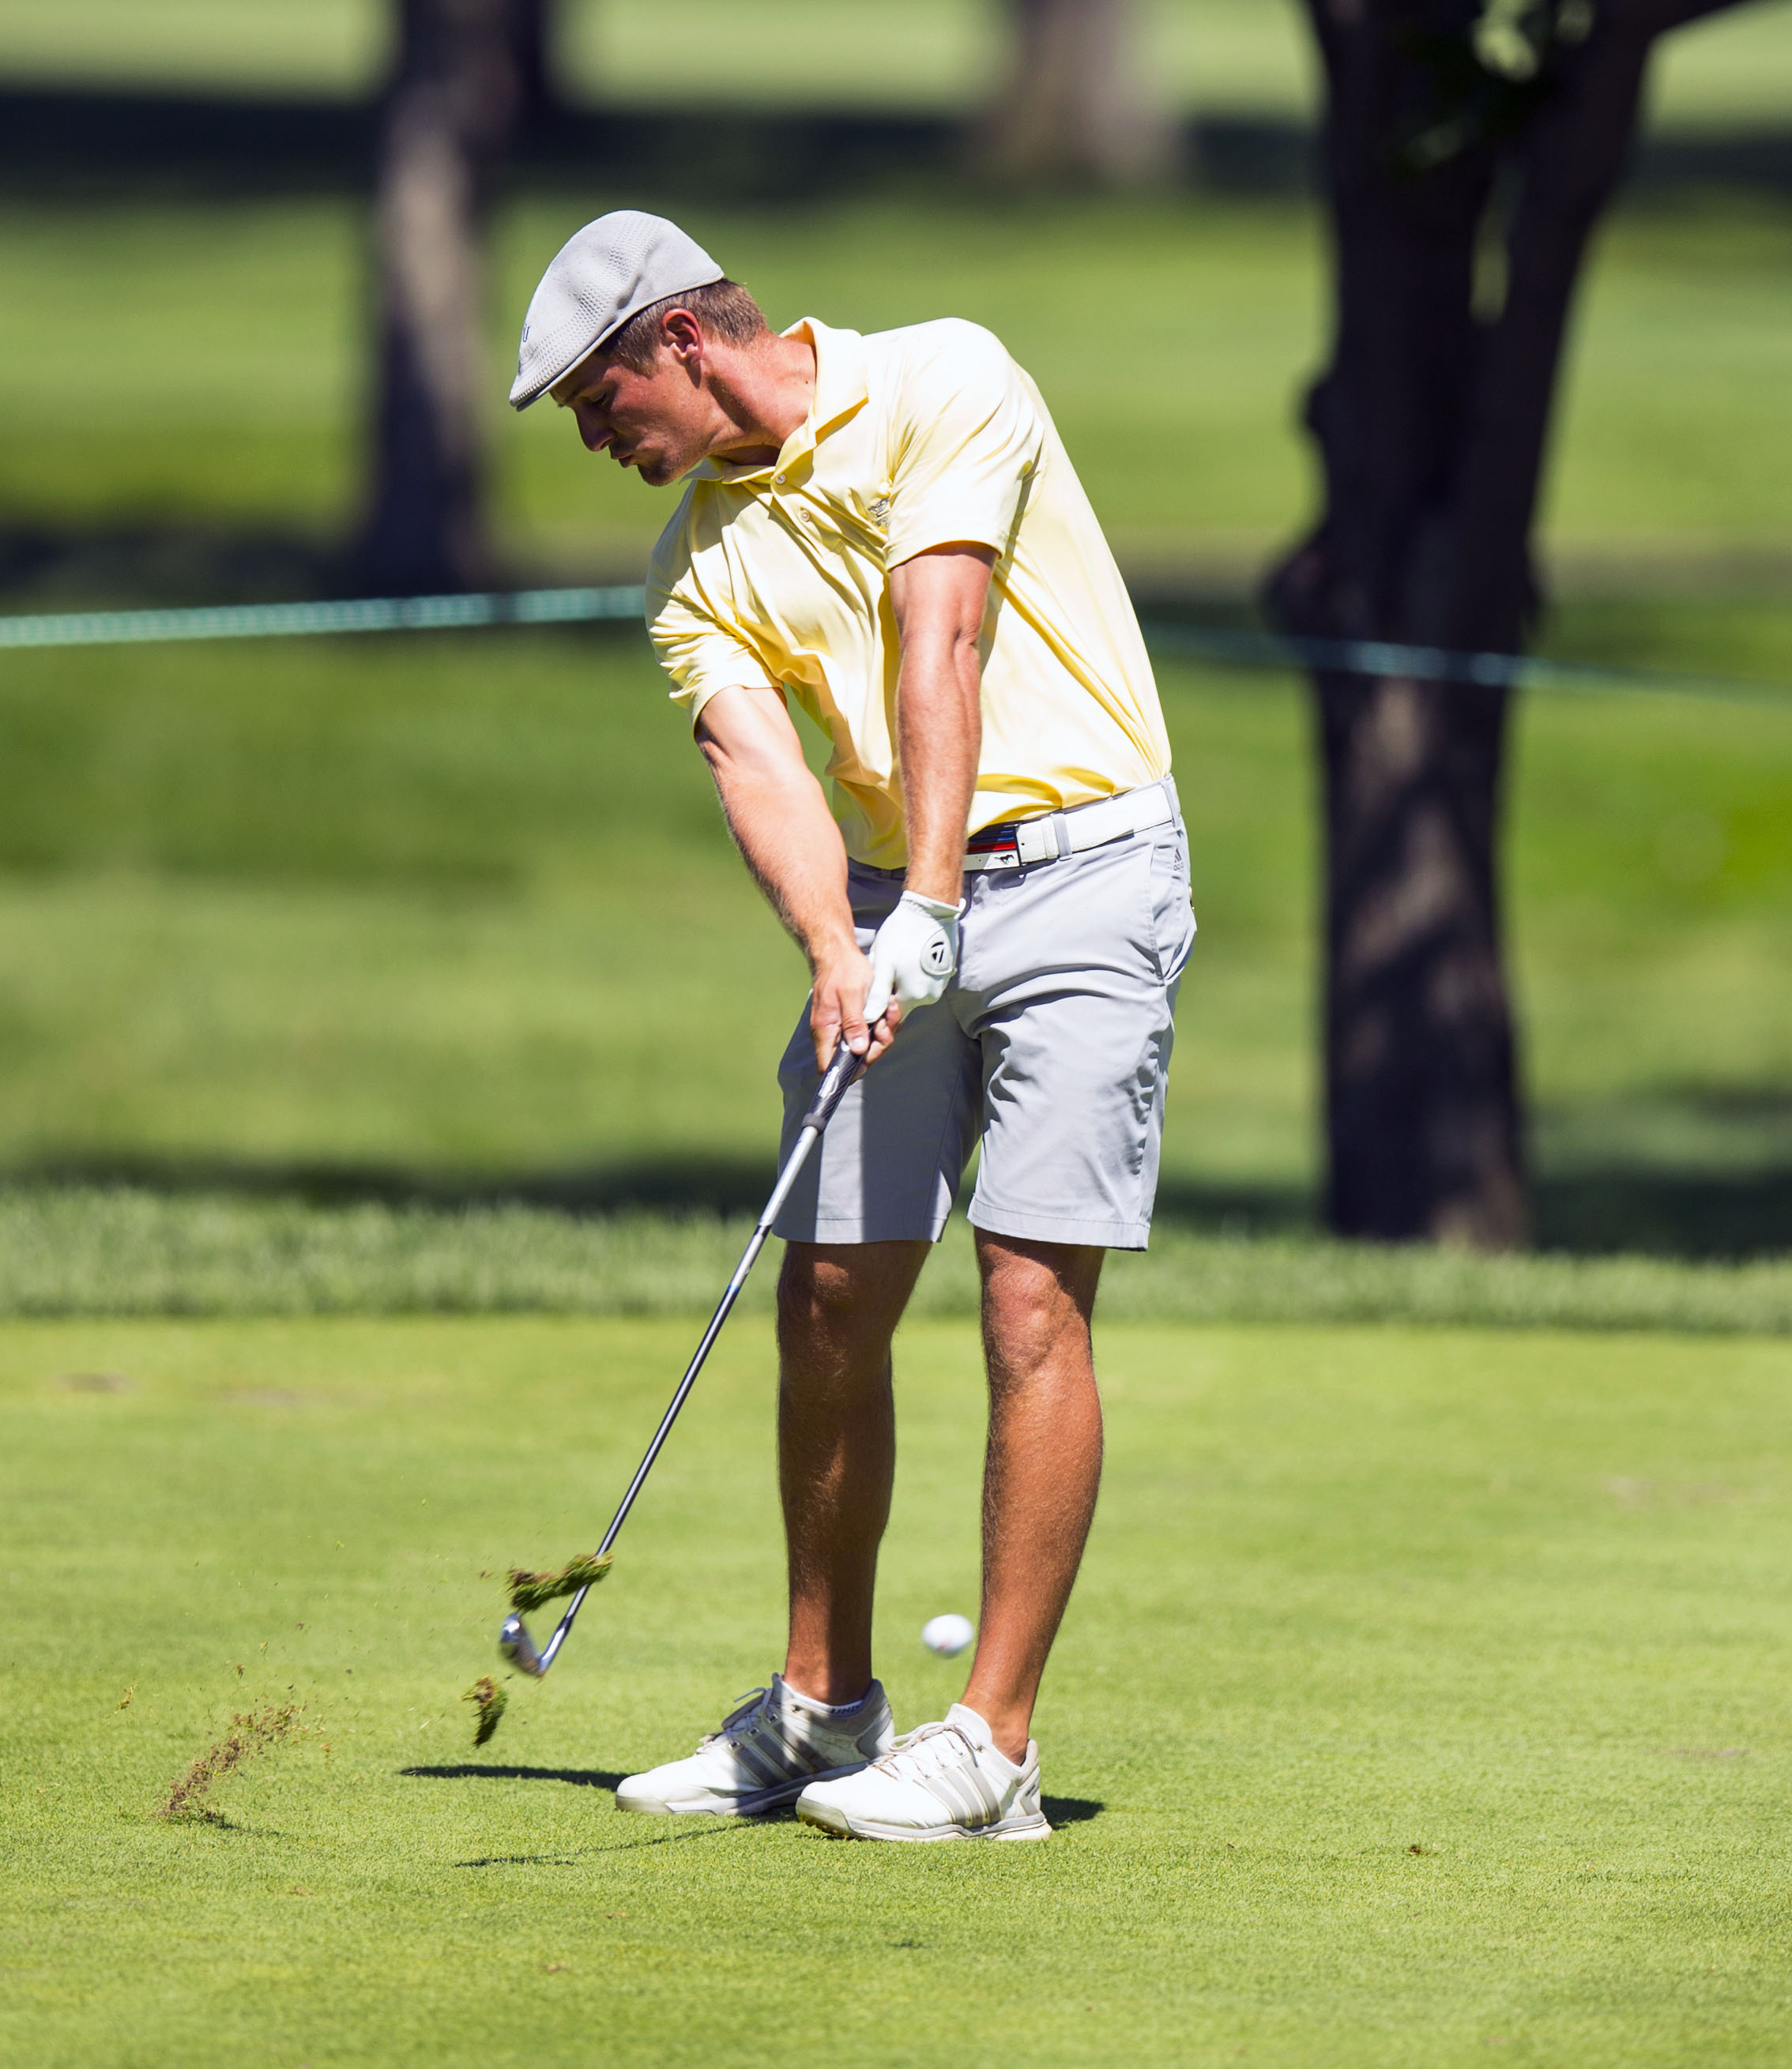 Consider, that amateur golf players by age groups